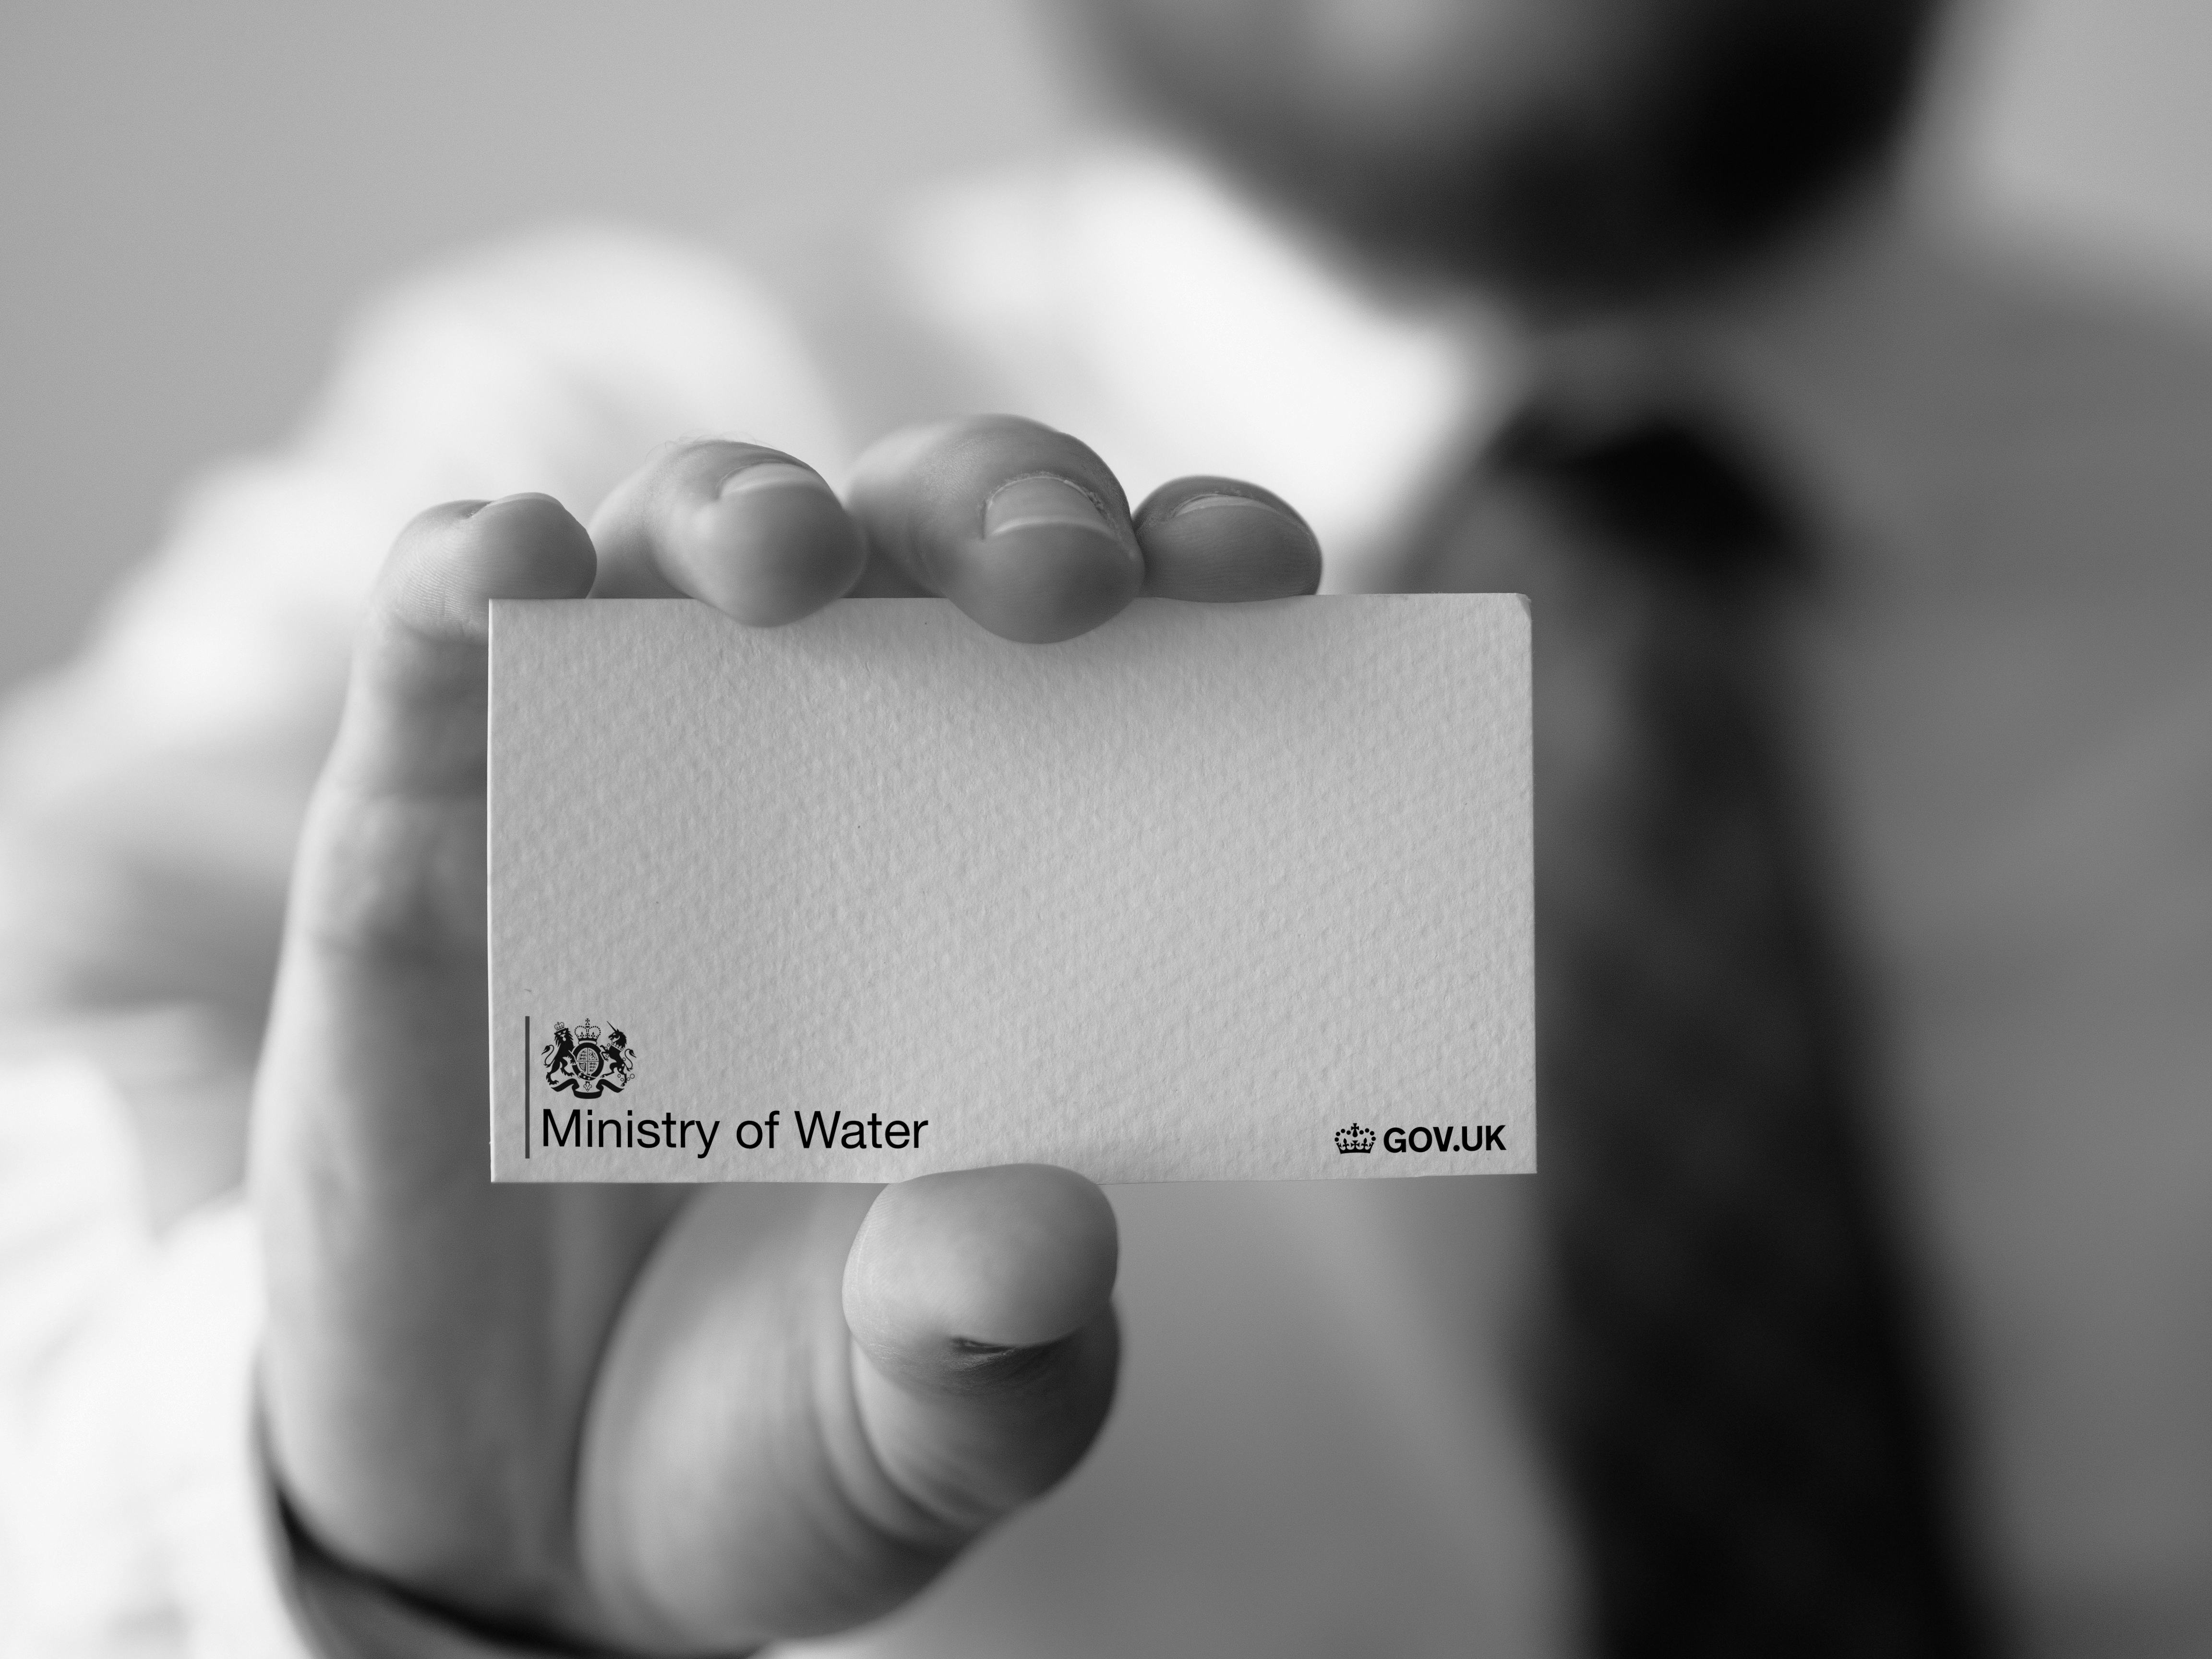 Black and white image of hand holding business card from Ministry of Water